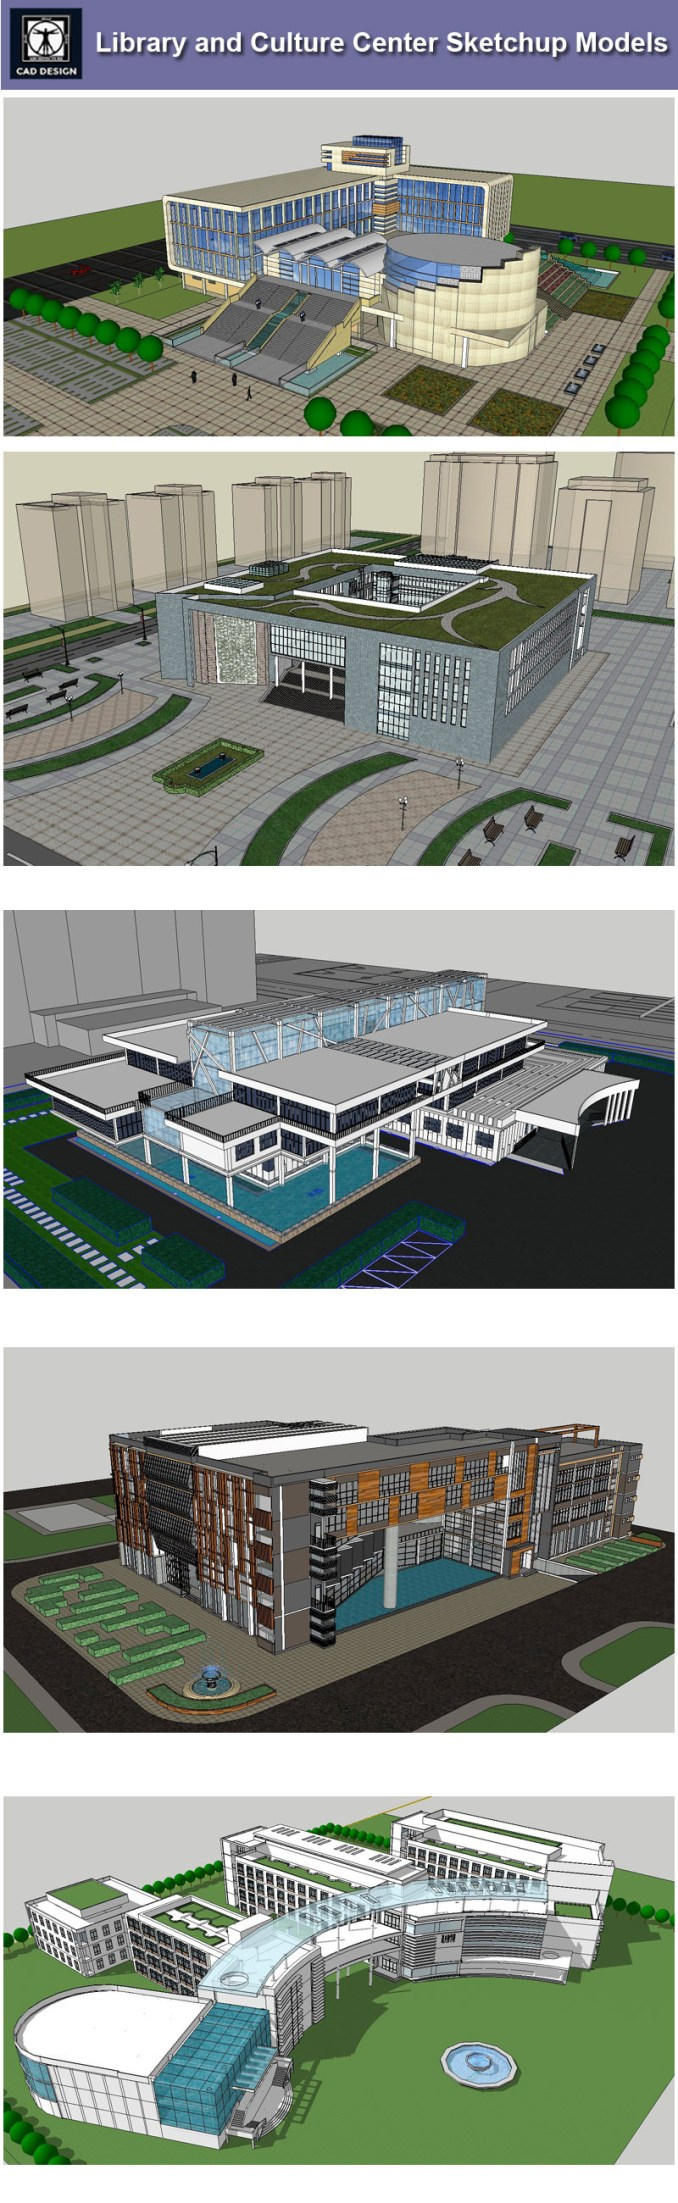 0c47565f90 Download 15 Library Sketchup 3D Models】 (Recommanded!!) | SketchUp ...